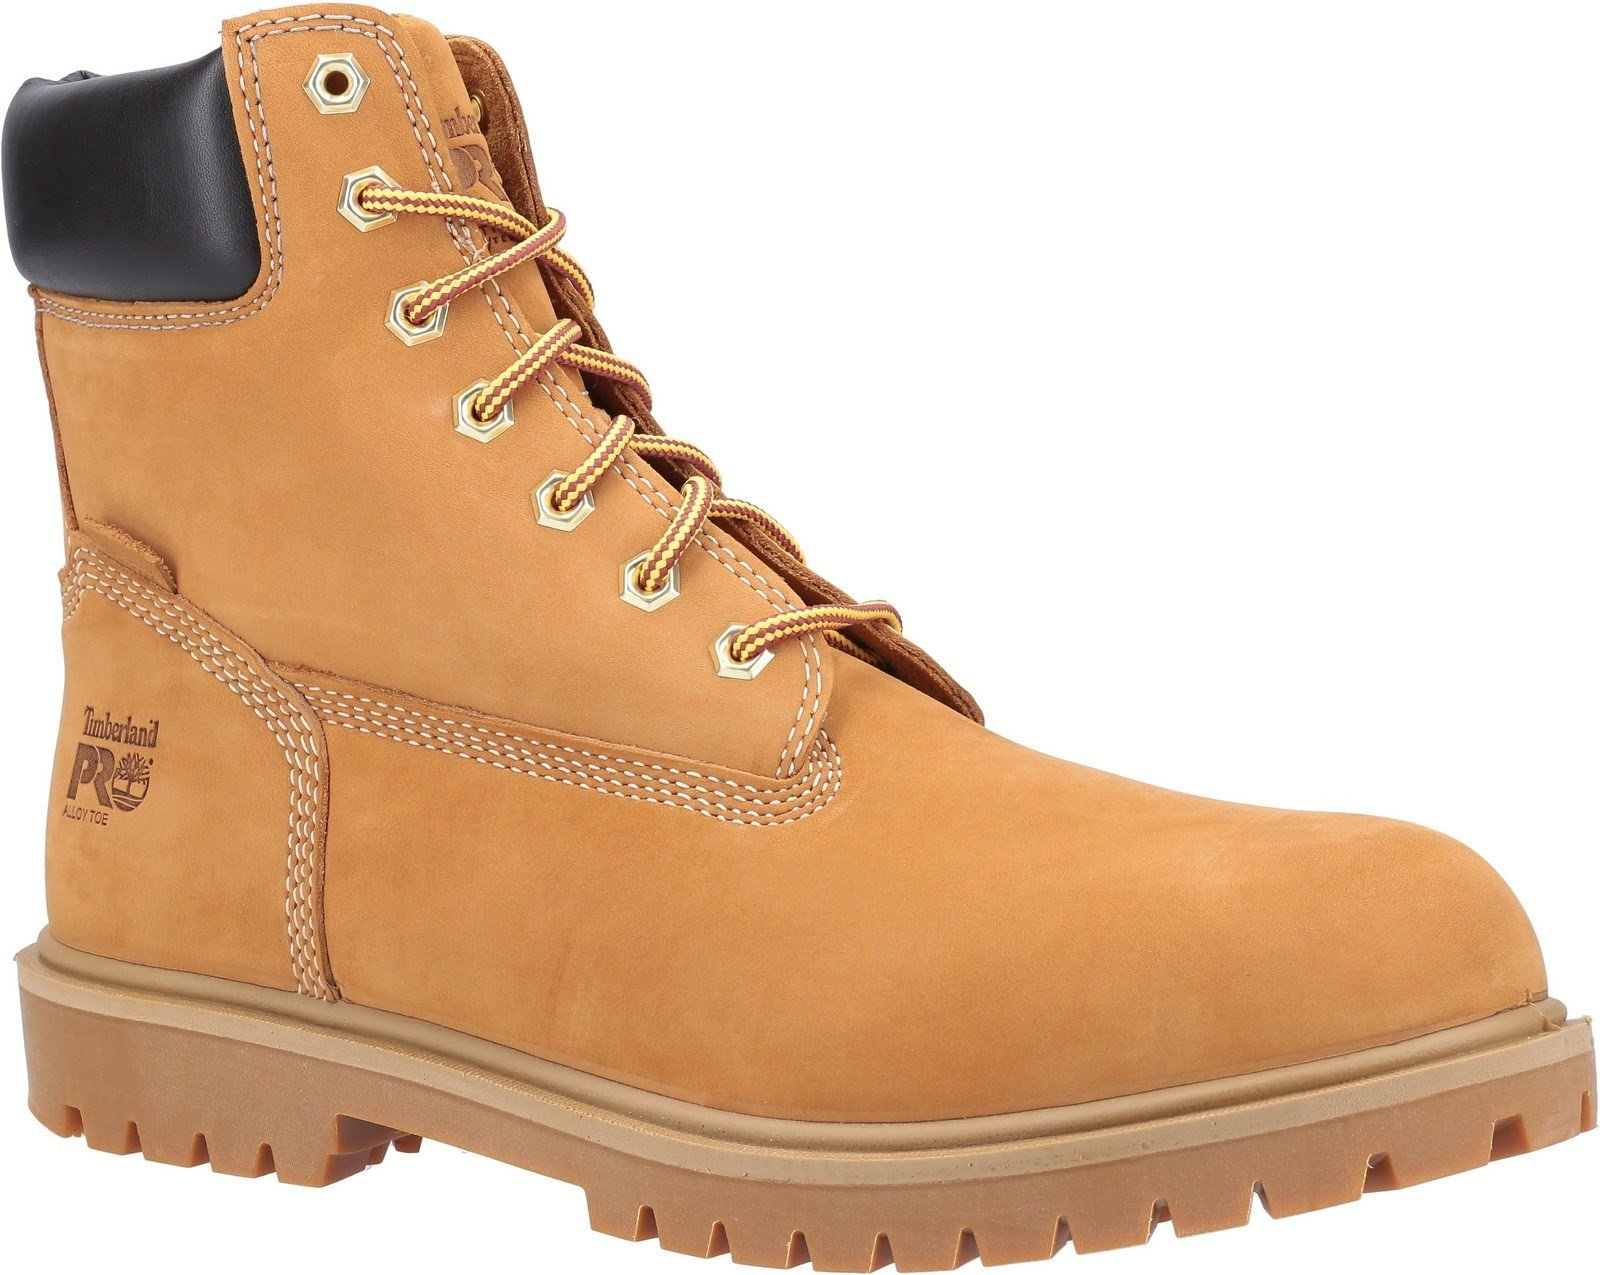 Timberland Pro Men's Iconic Safety Toe Work Boot Various Colours 30949 - Wheat 6